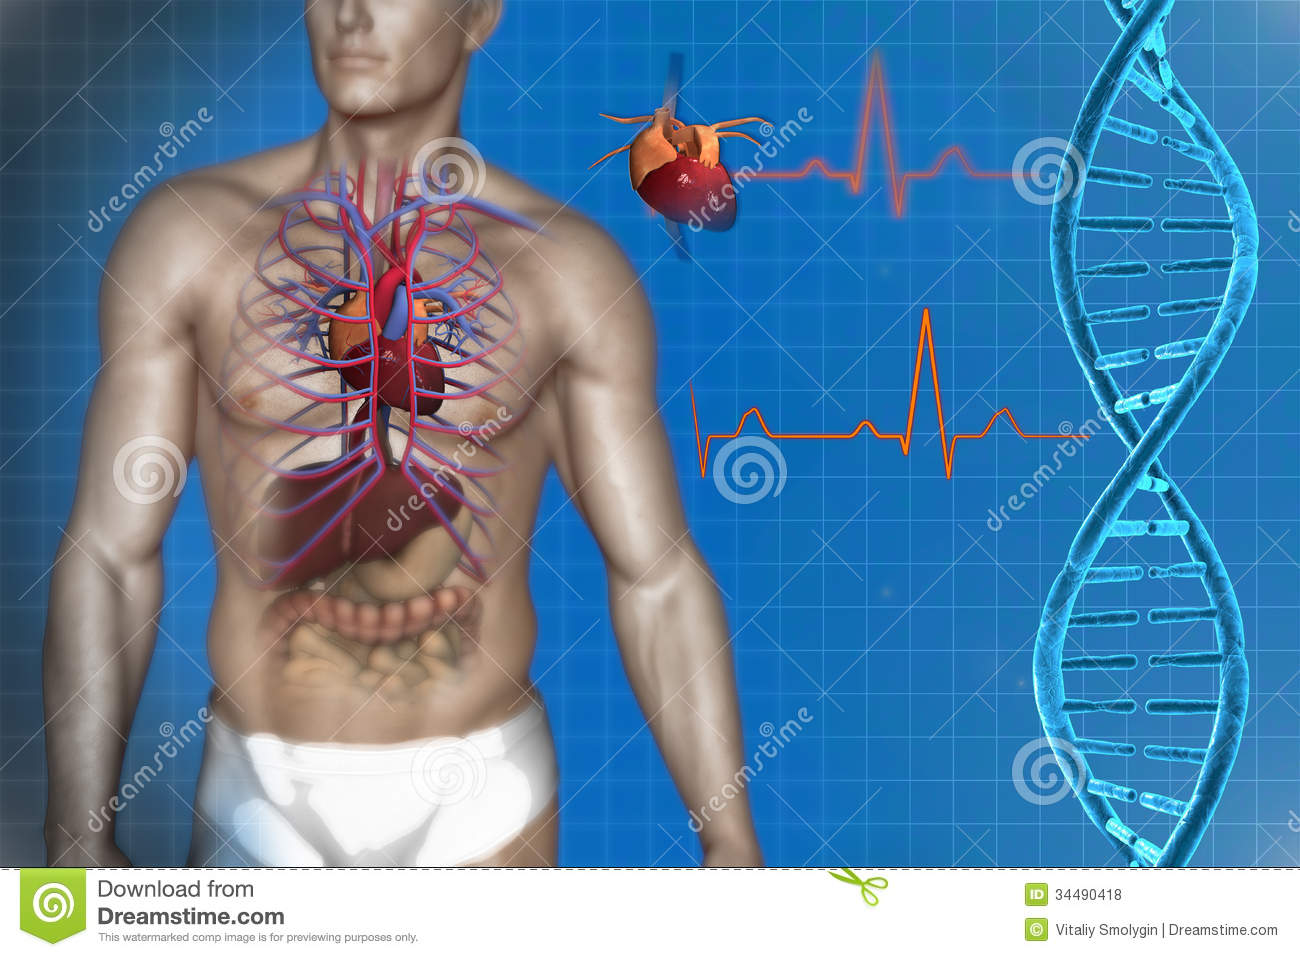 Human heart anatomy stock illustration. Illustration of internal ...